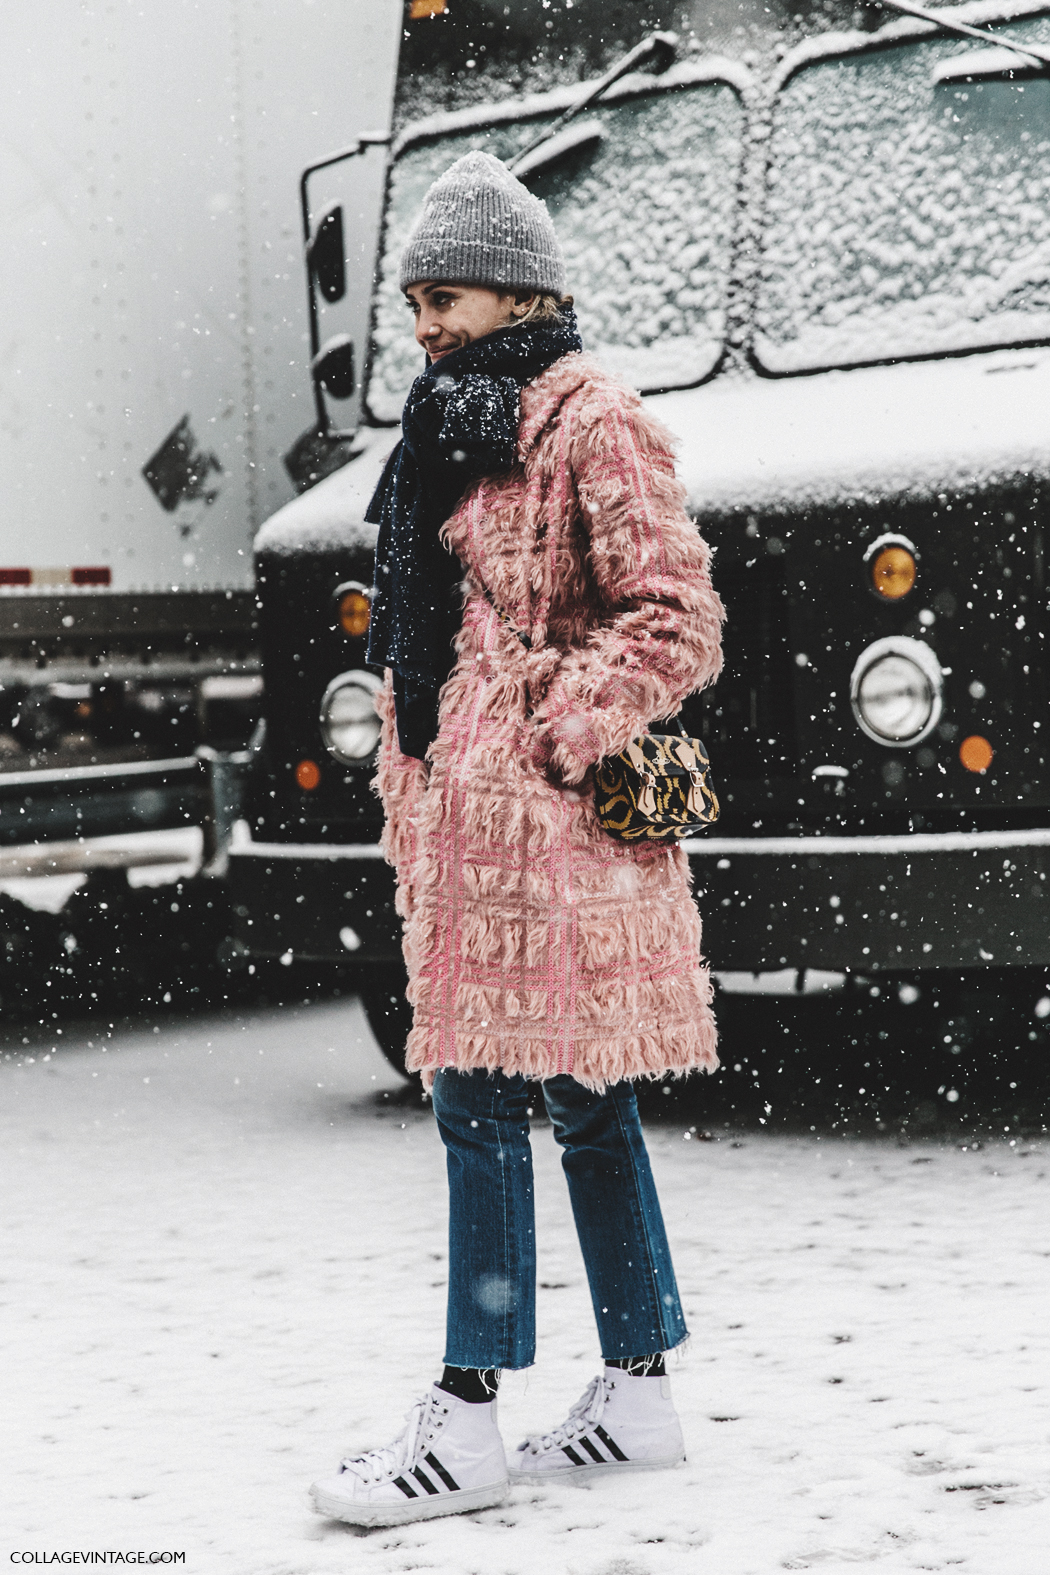 NYFW-New_York_Fashion_Week-Fall_Winter-17-Street_Style-Pink_coat-Sneakers-